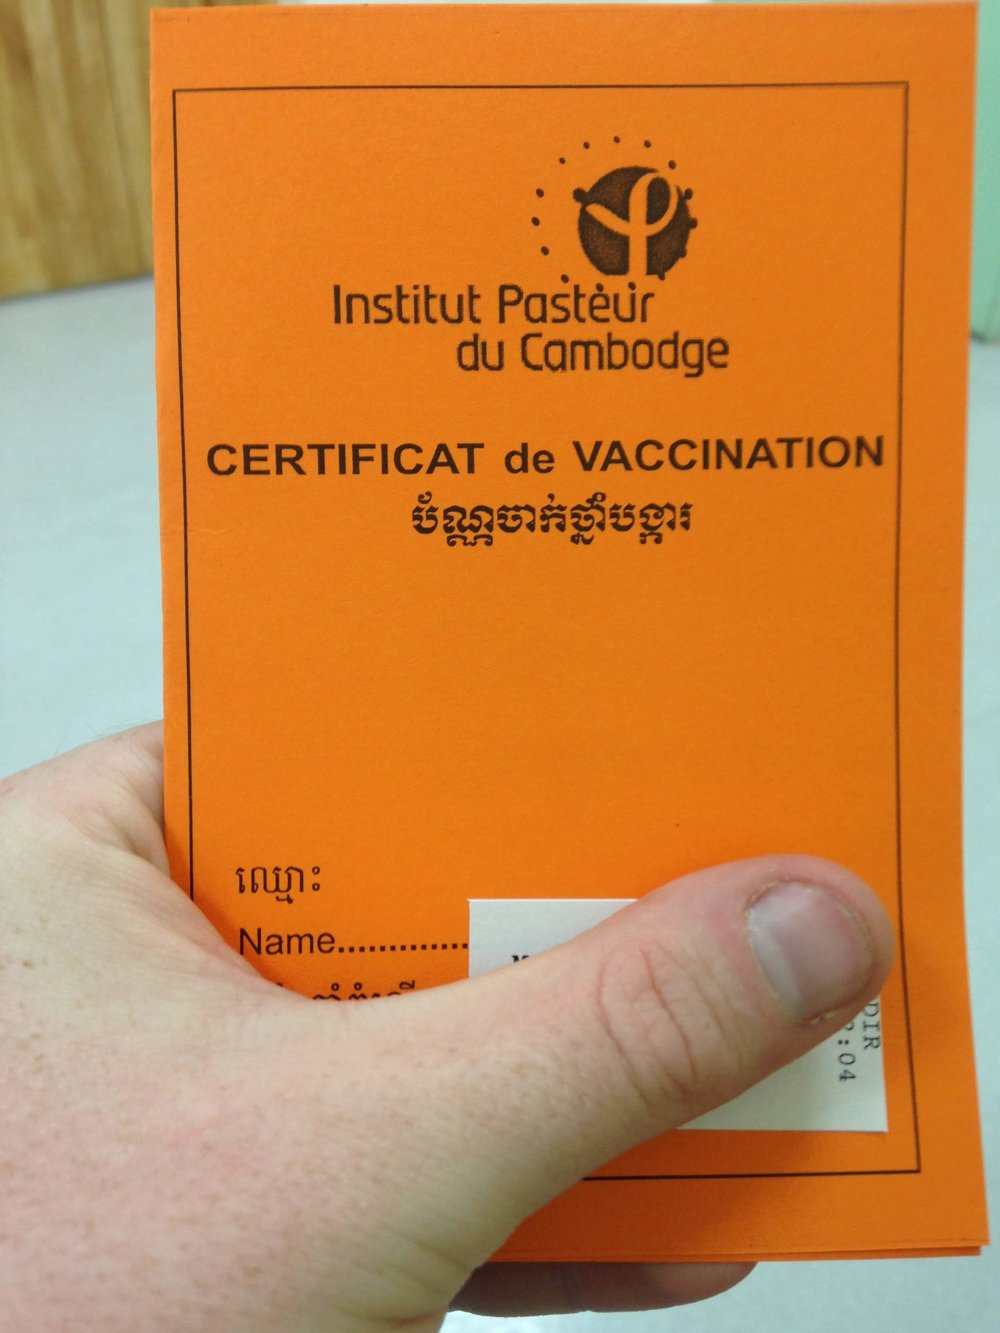 international vaccination card from the Pasteur Institute in Phnom Penh, Cambodia